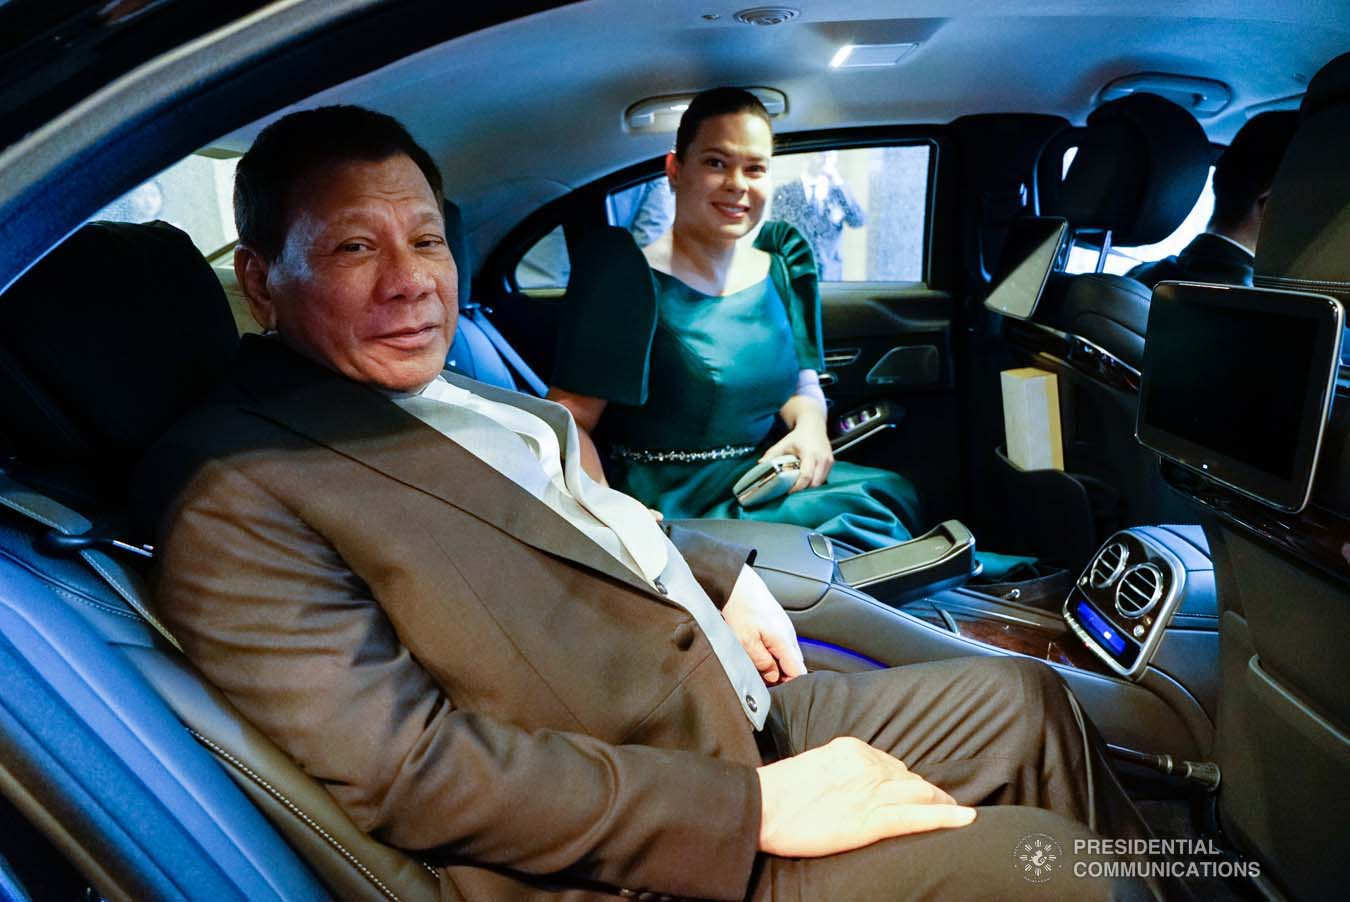 President Rodrigo Roa Duterte poses for posterity with his daughter, Davao City Mayor Sara Duterte-Carpio, as they prepare to head to the Imperial Palace in Tokyo, Japan for the Ceremonies of the Accession to the Throne of His Majesty Emperor Naruhito on October 22, 2019. KING RODRIGUEZ/PRESIDENTIAL PHOTO